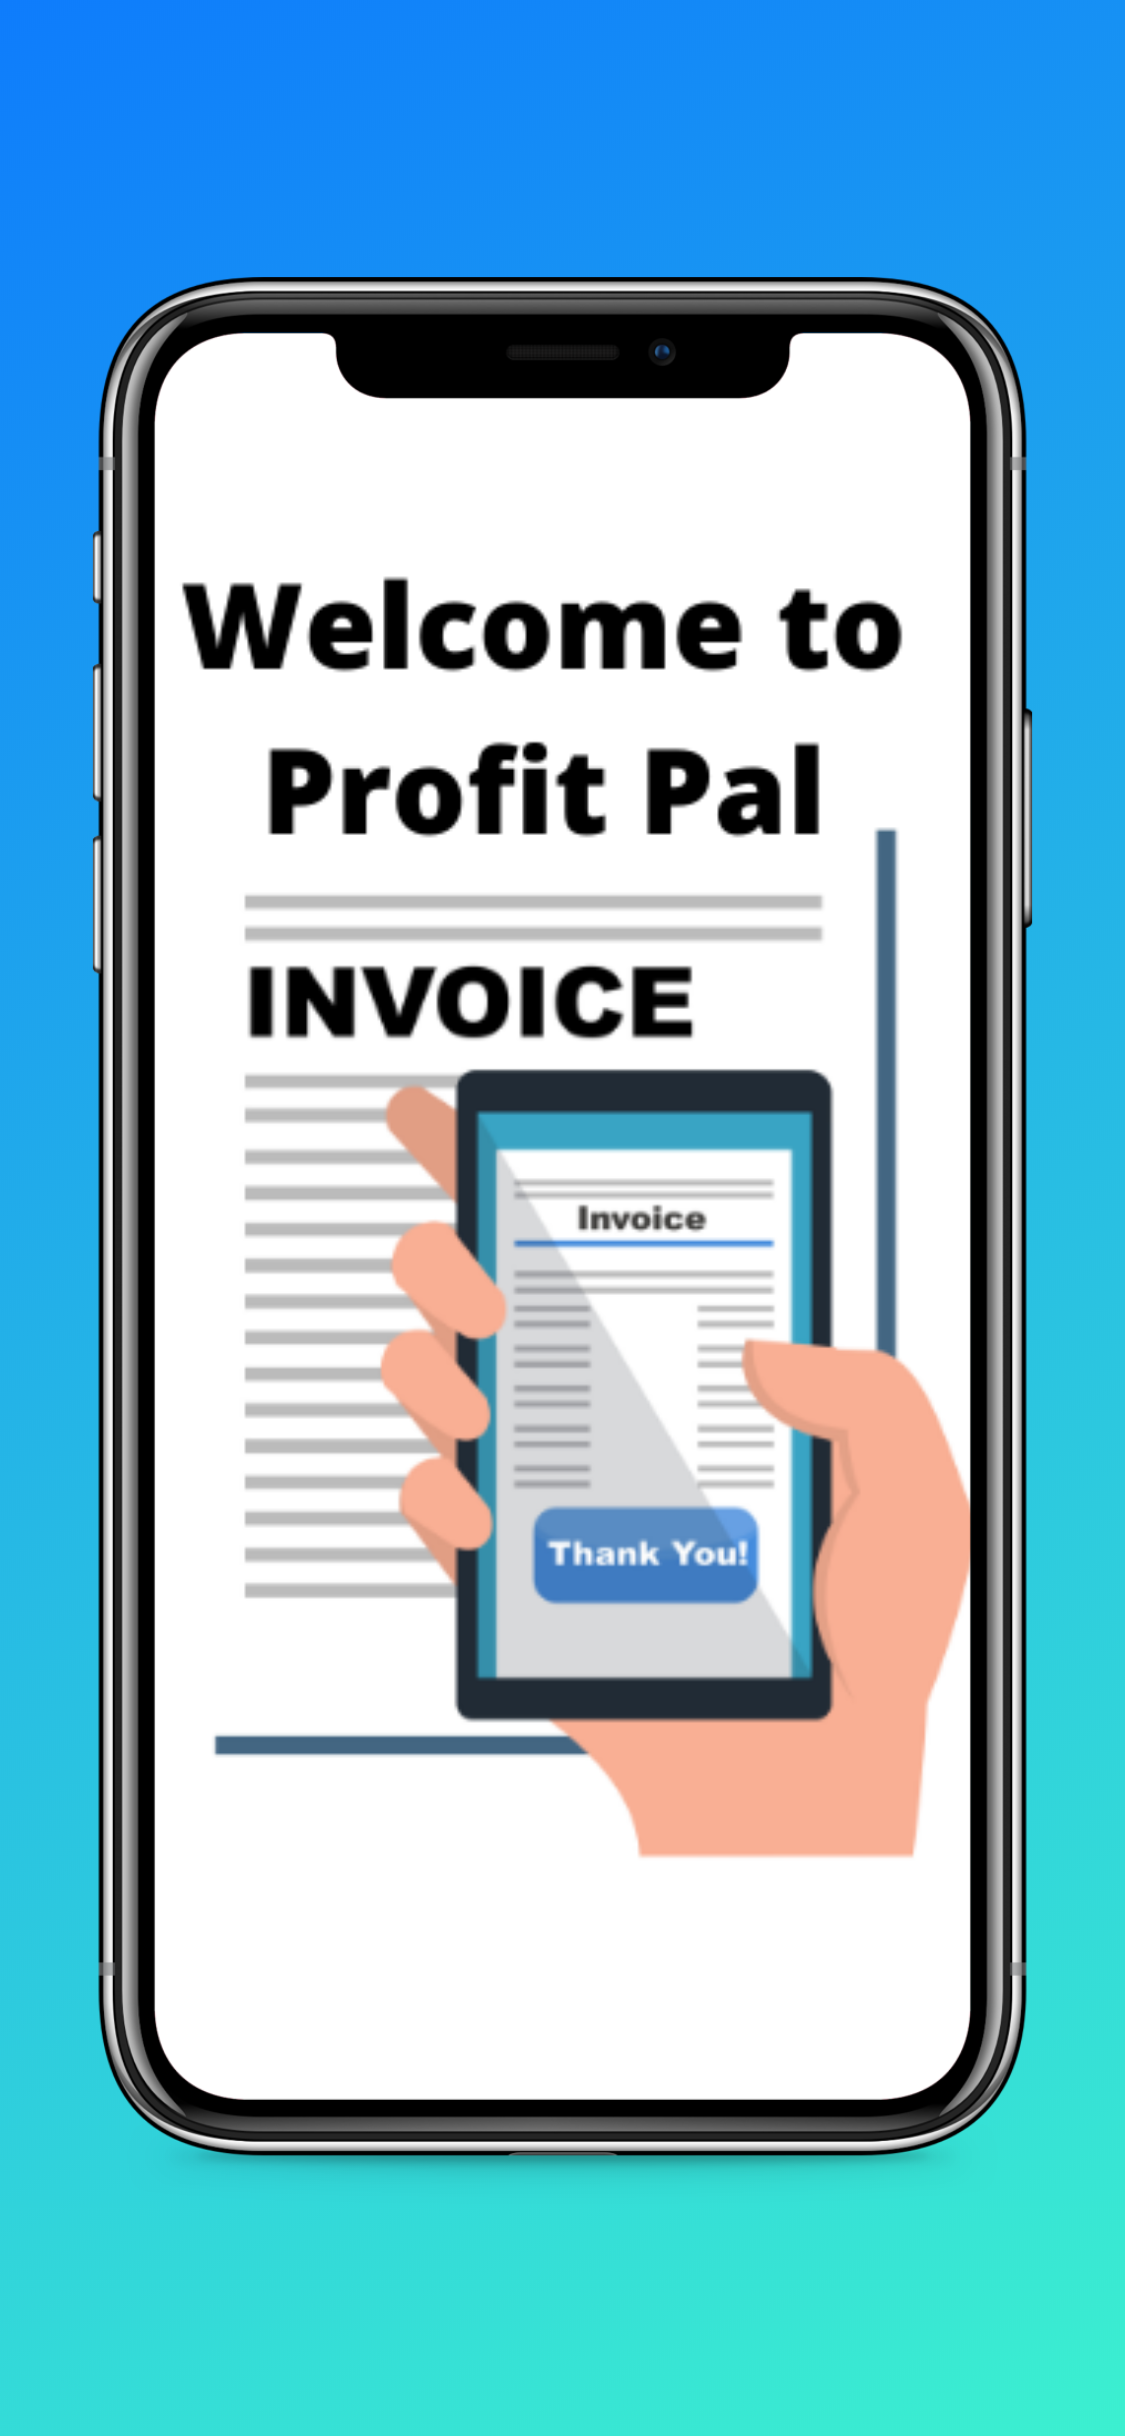 Profit Pal Mobile Invoicing App